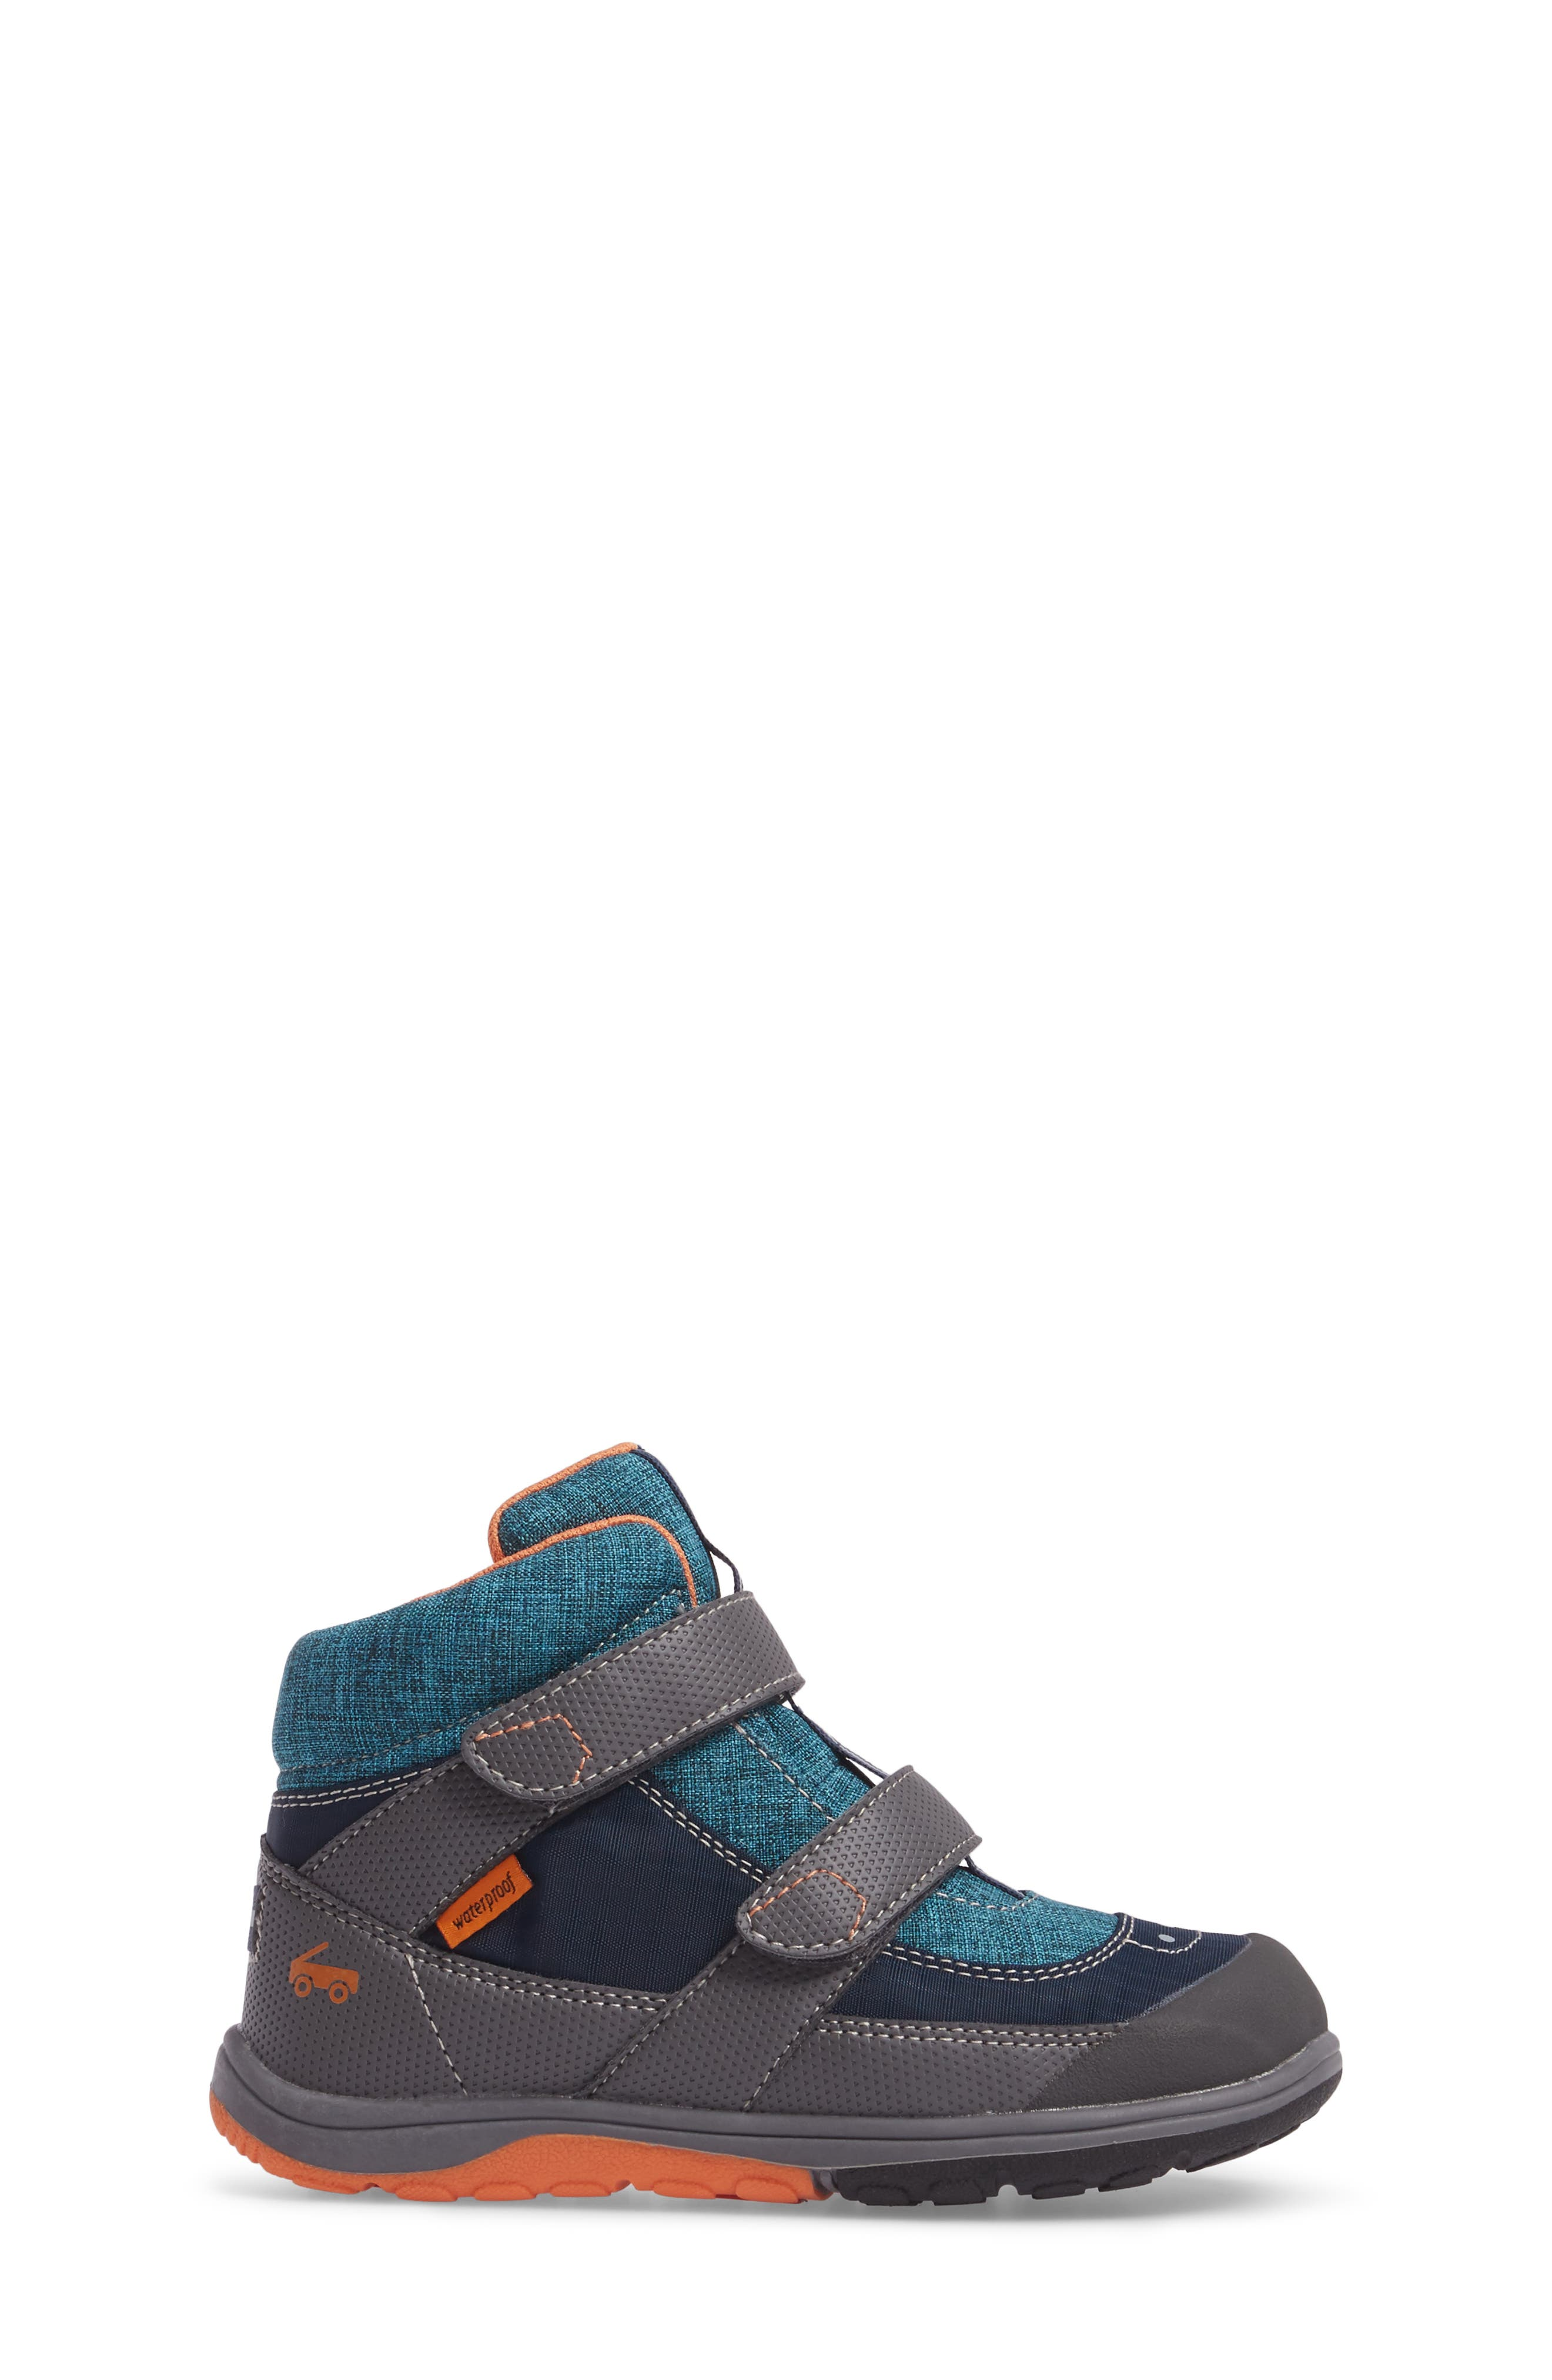 'Atlas' Waterproof Boot,                             Alternate thumbnail 7, color,